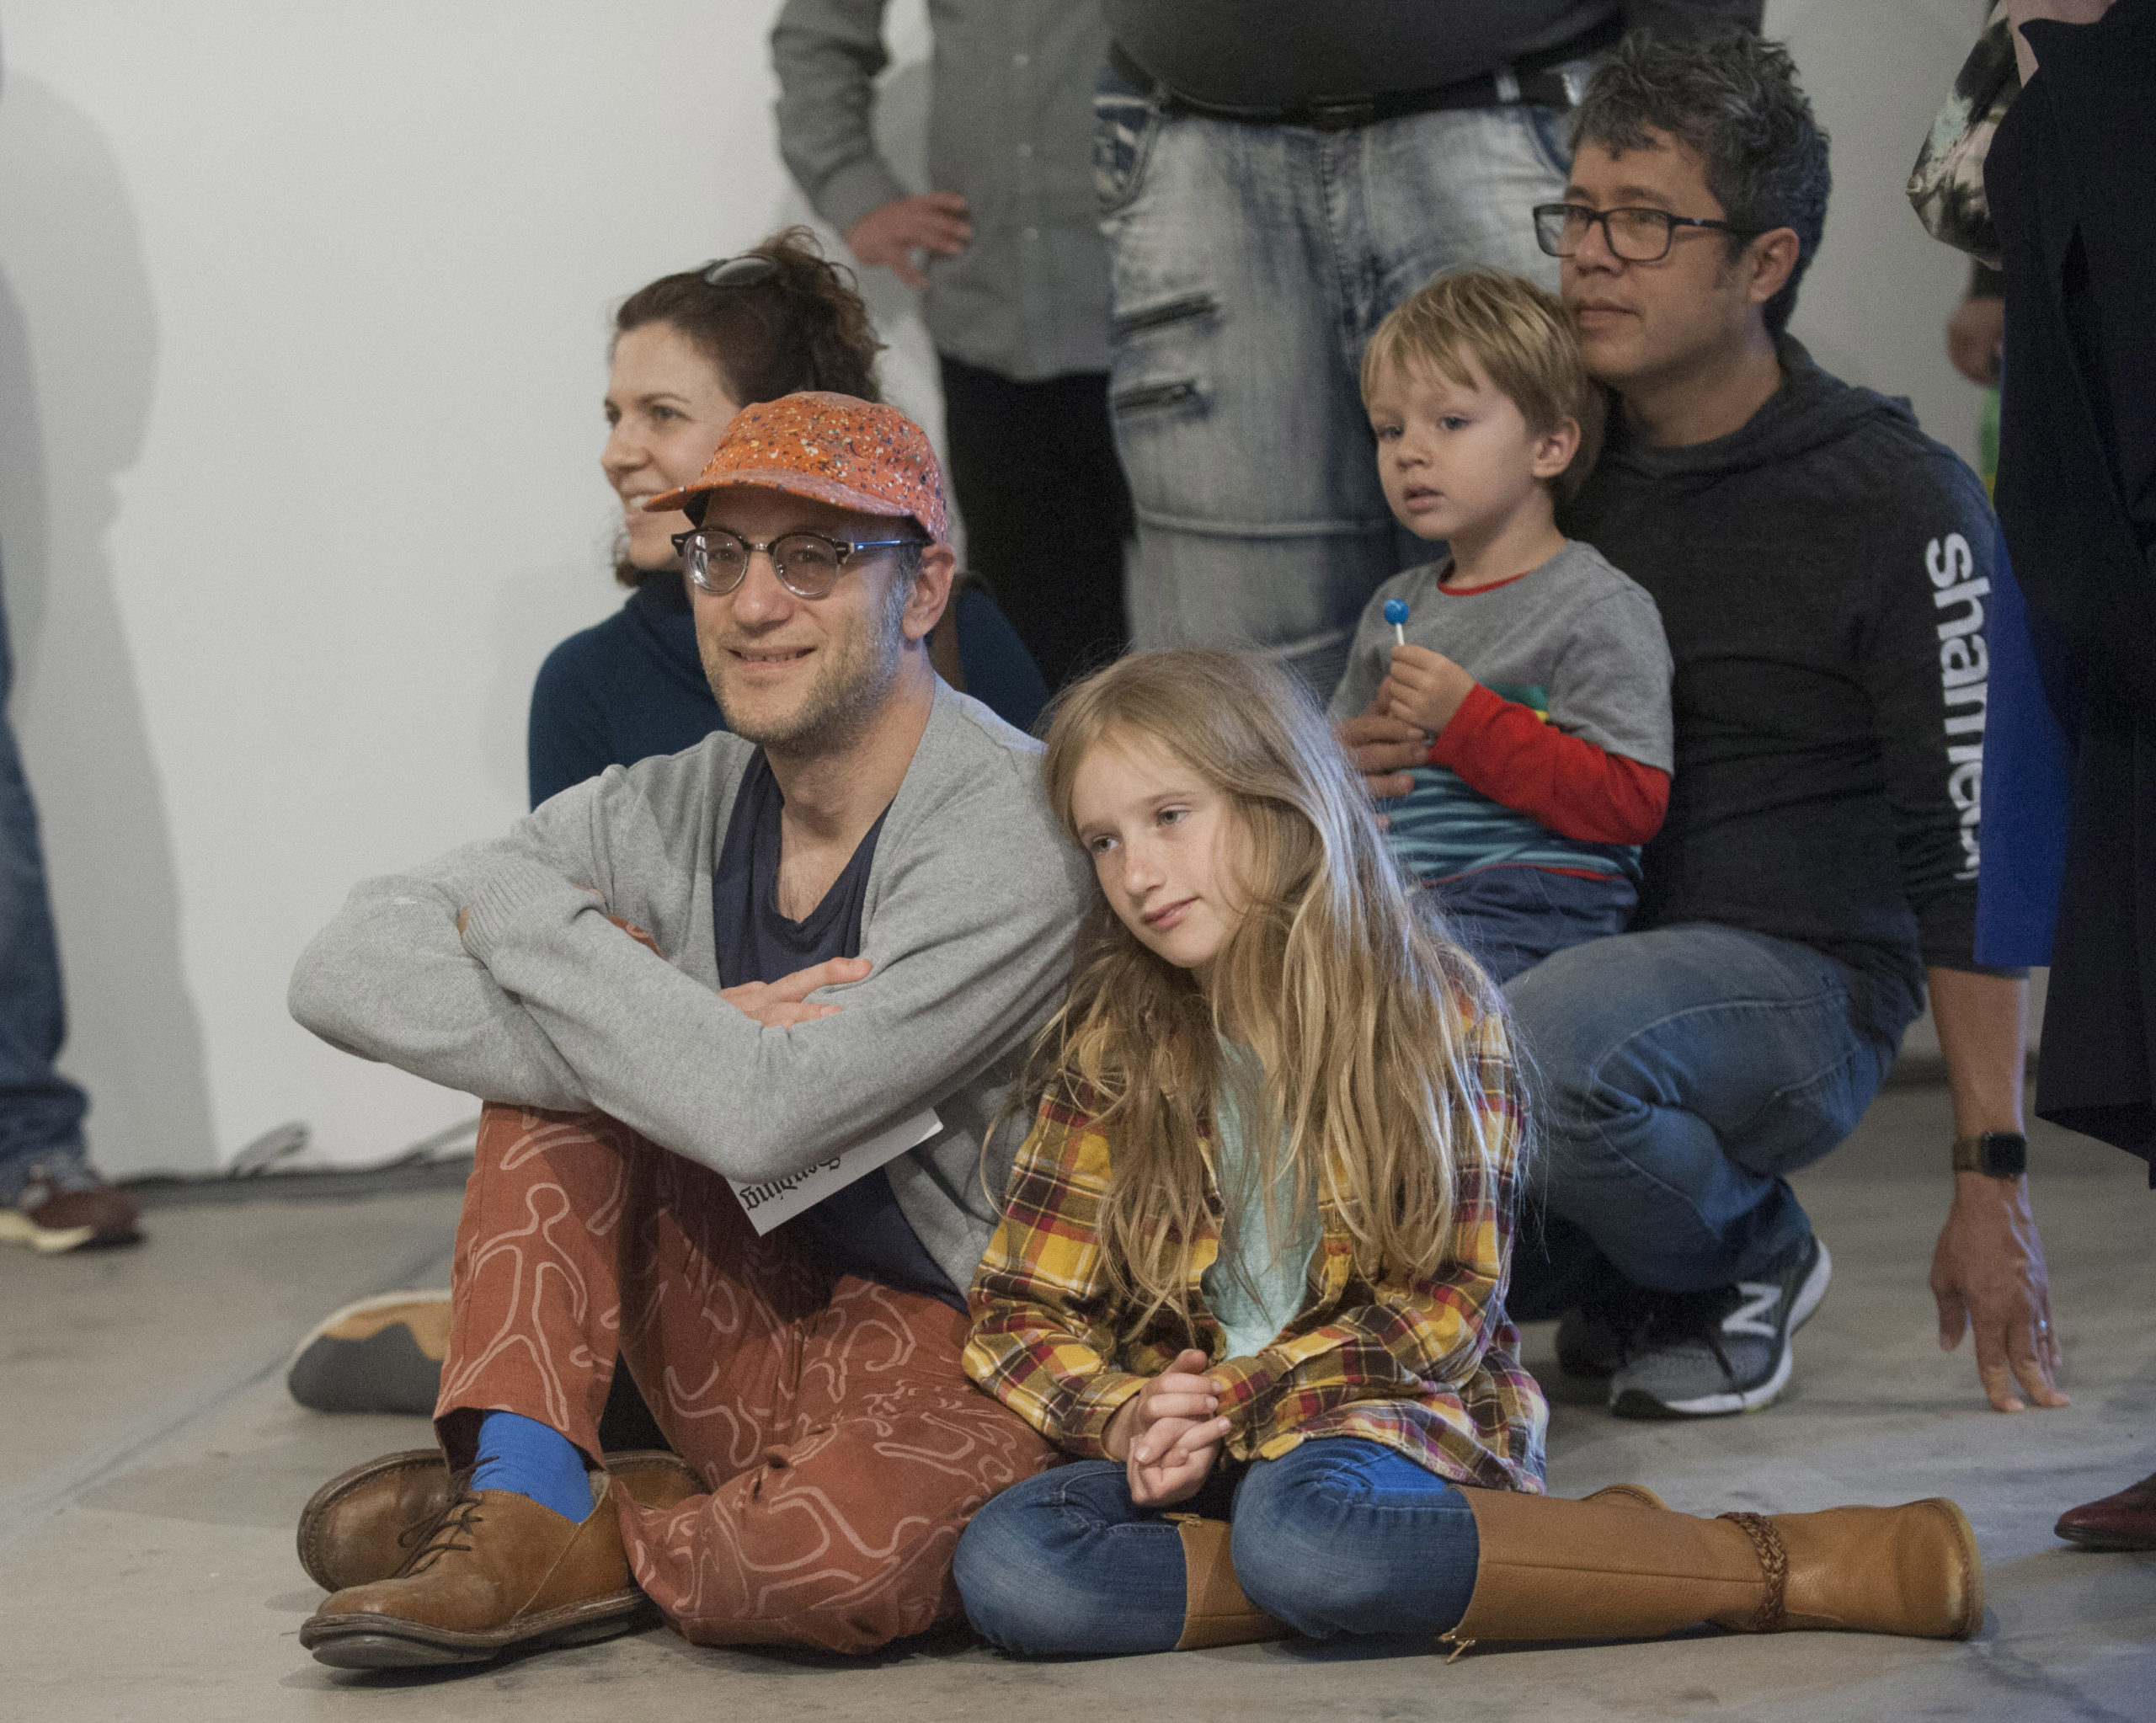 Visitors are sitting on the floor listening and watching a performance in the gallery.